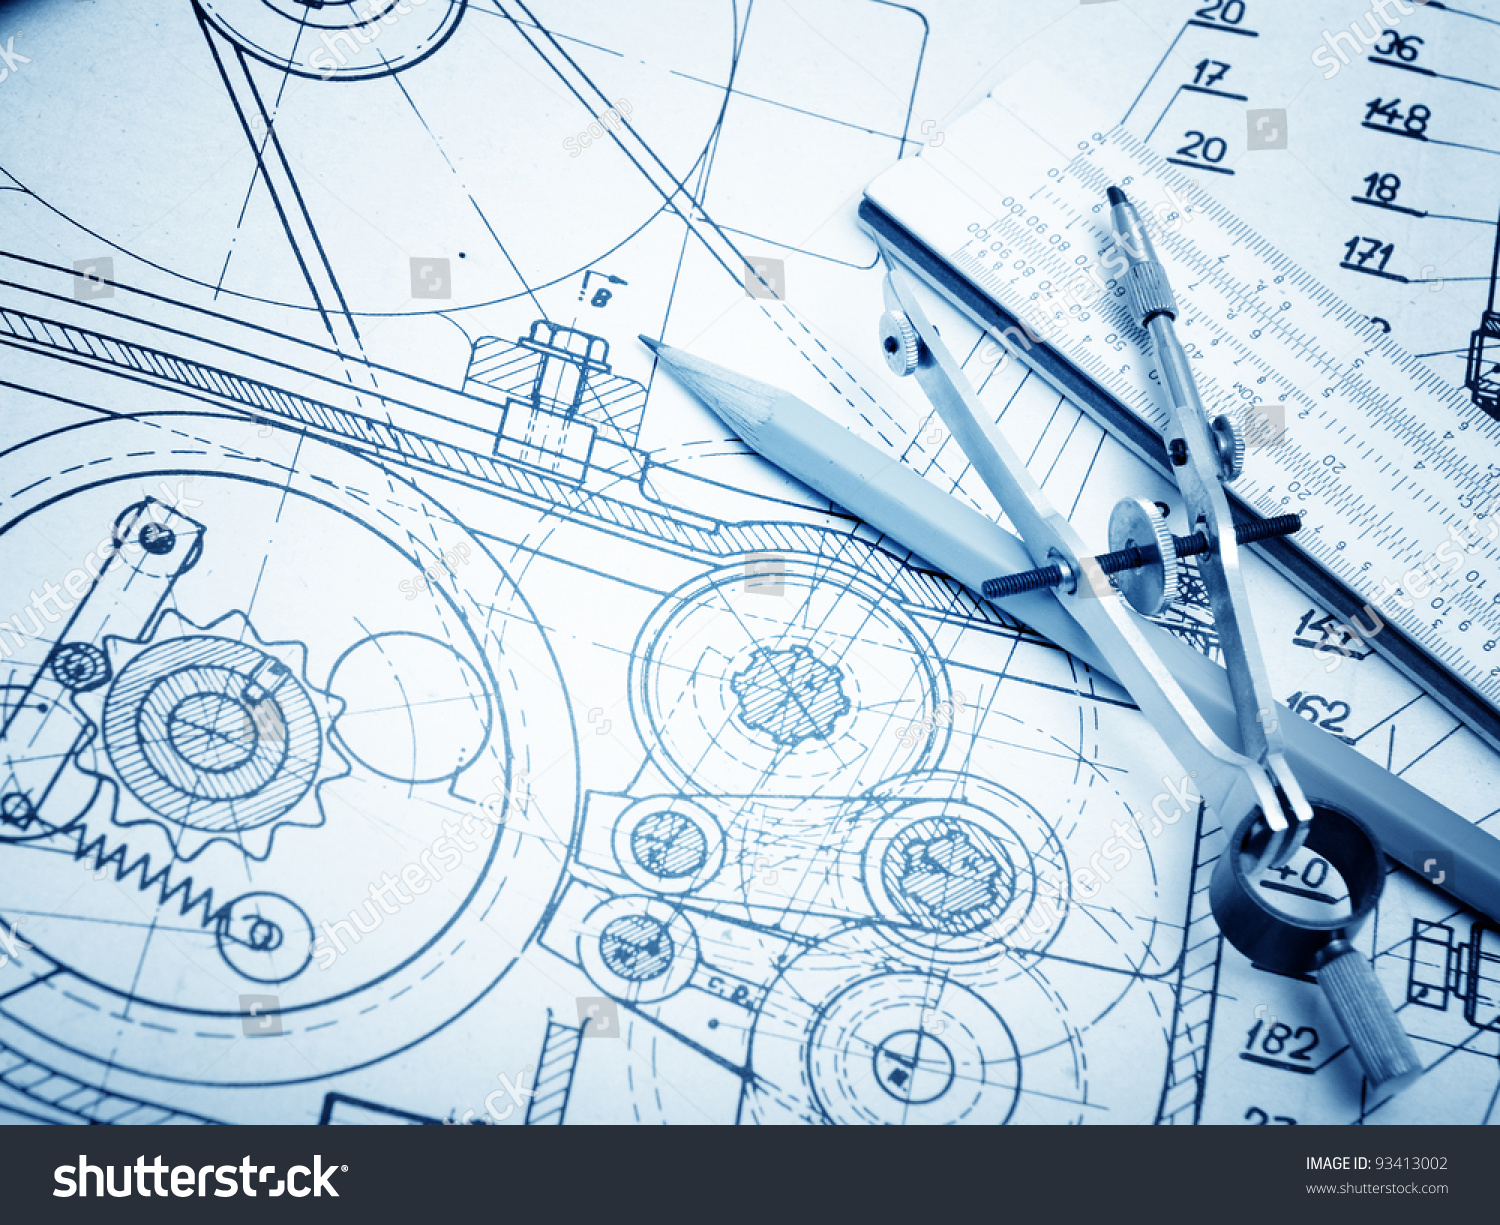 industrial drawing detail several drawing tools stock photo